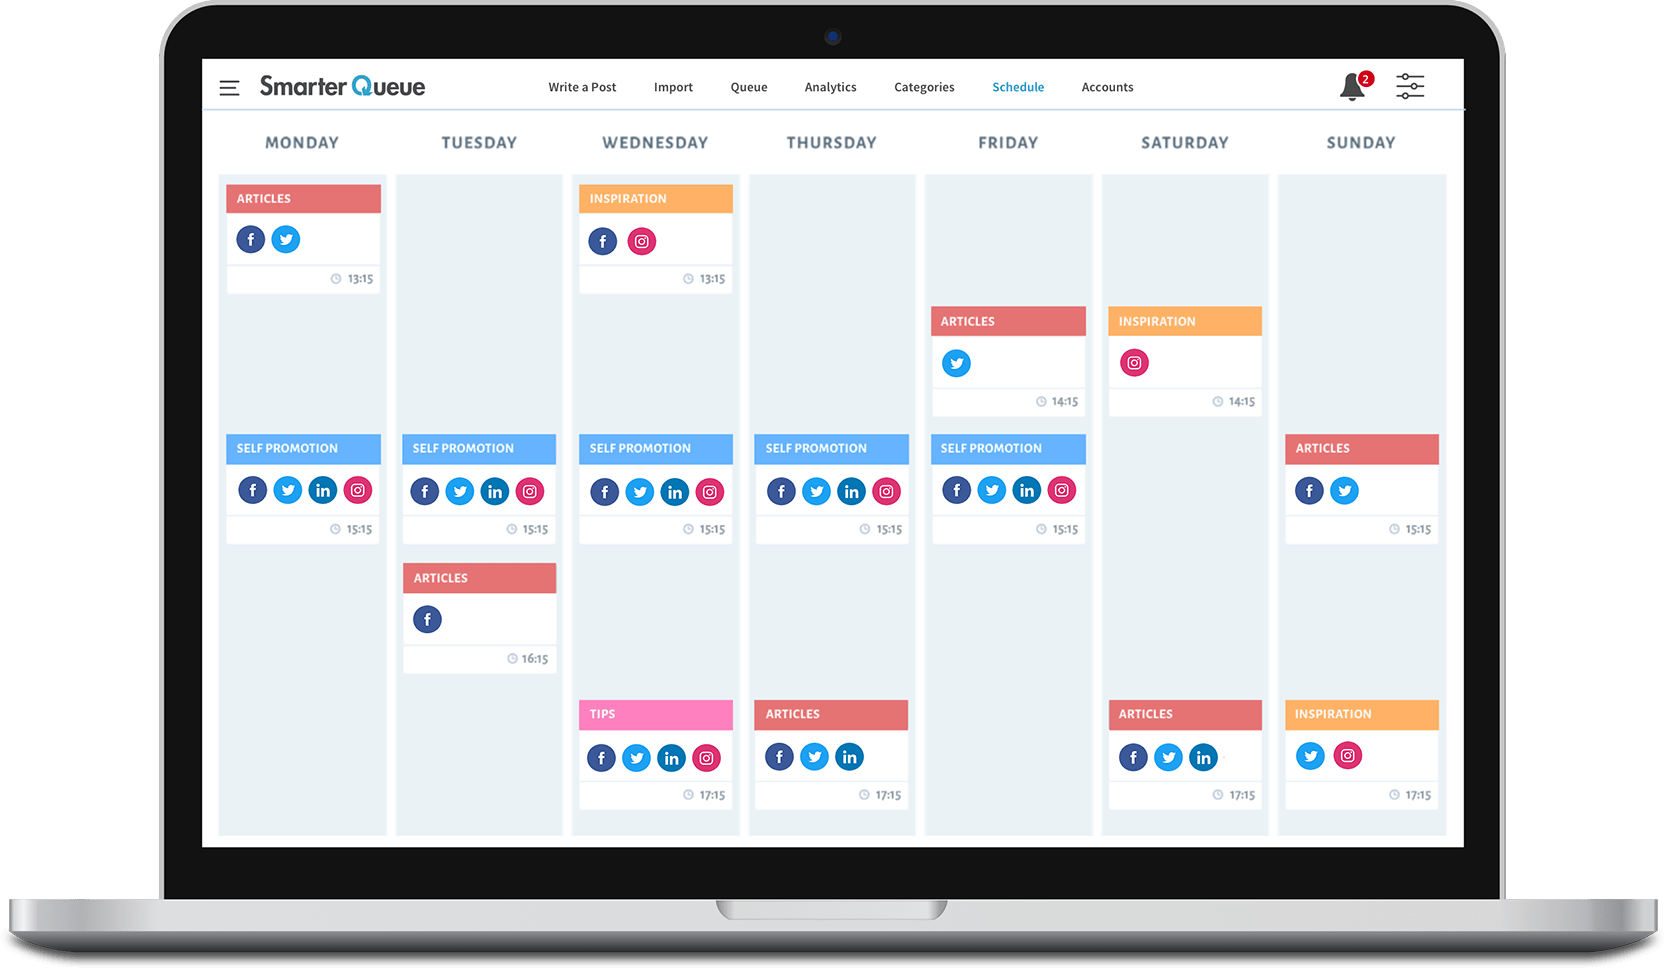 Image of SmarterQueue's visual calendar for scheduling